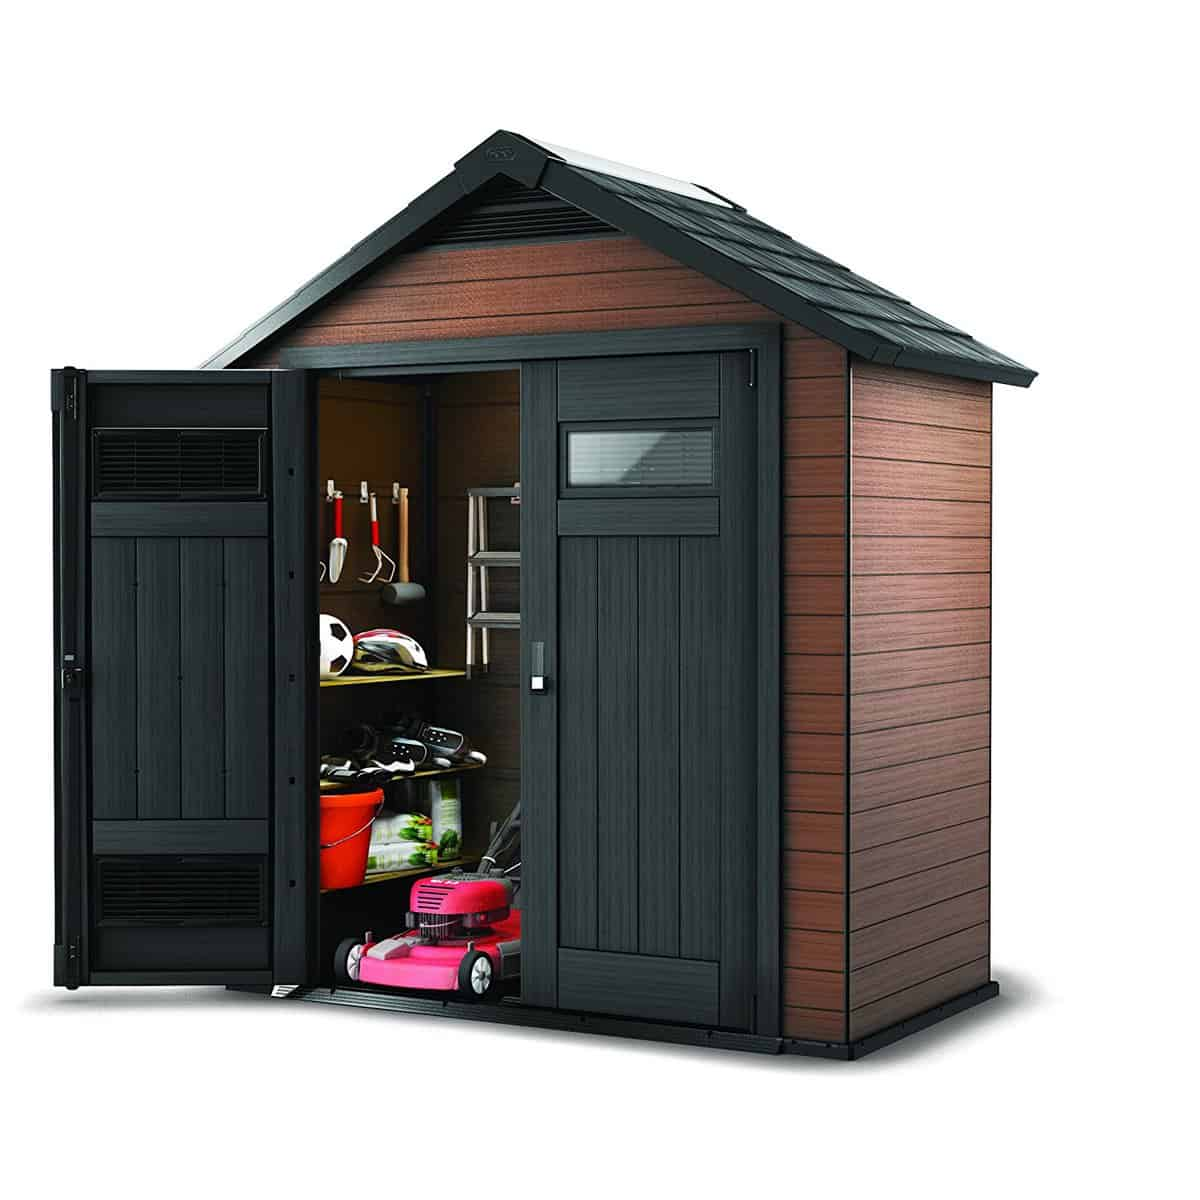 Keter Fusion Wood and Plastic Storage Shed